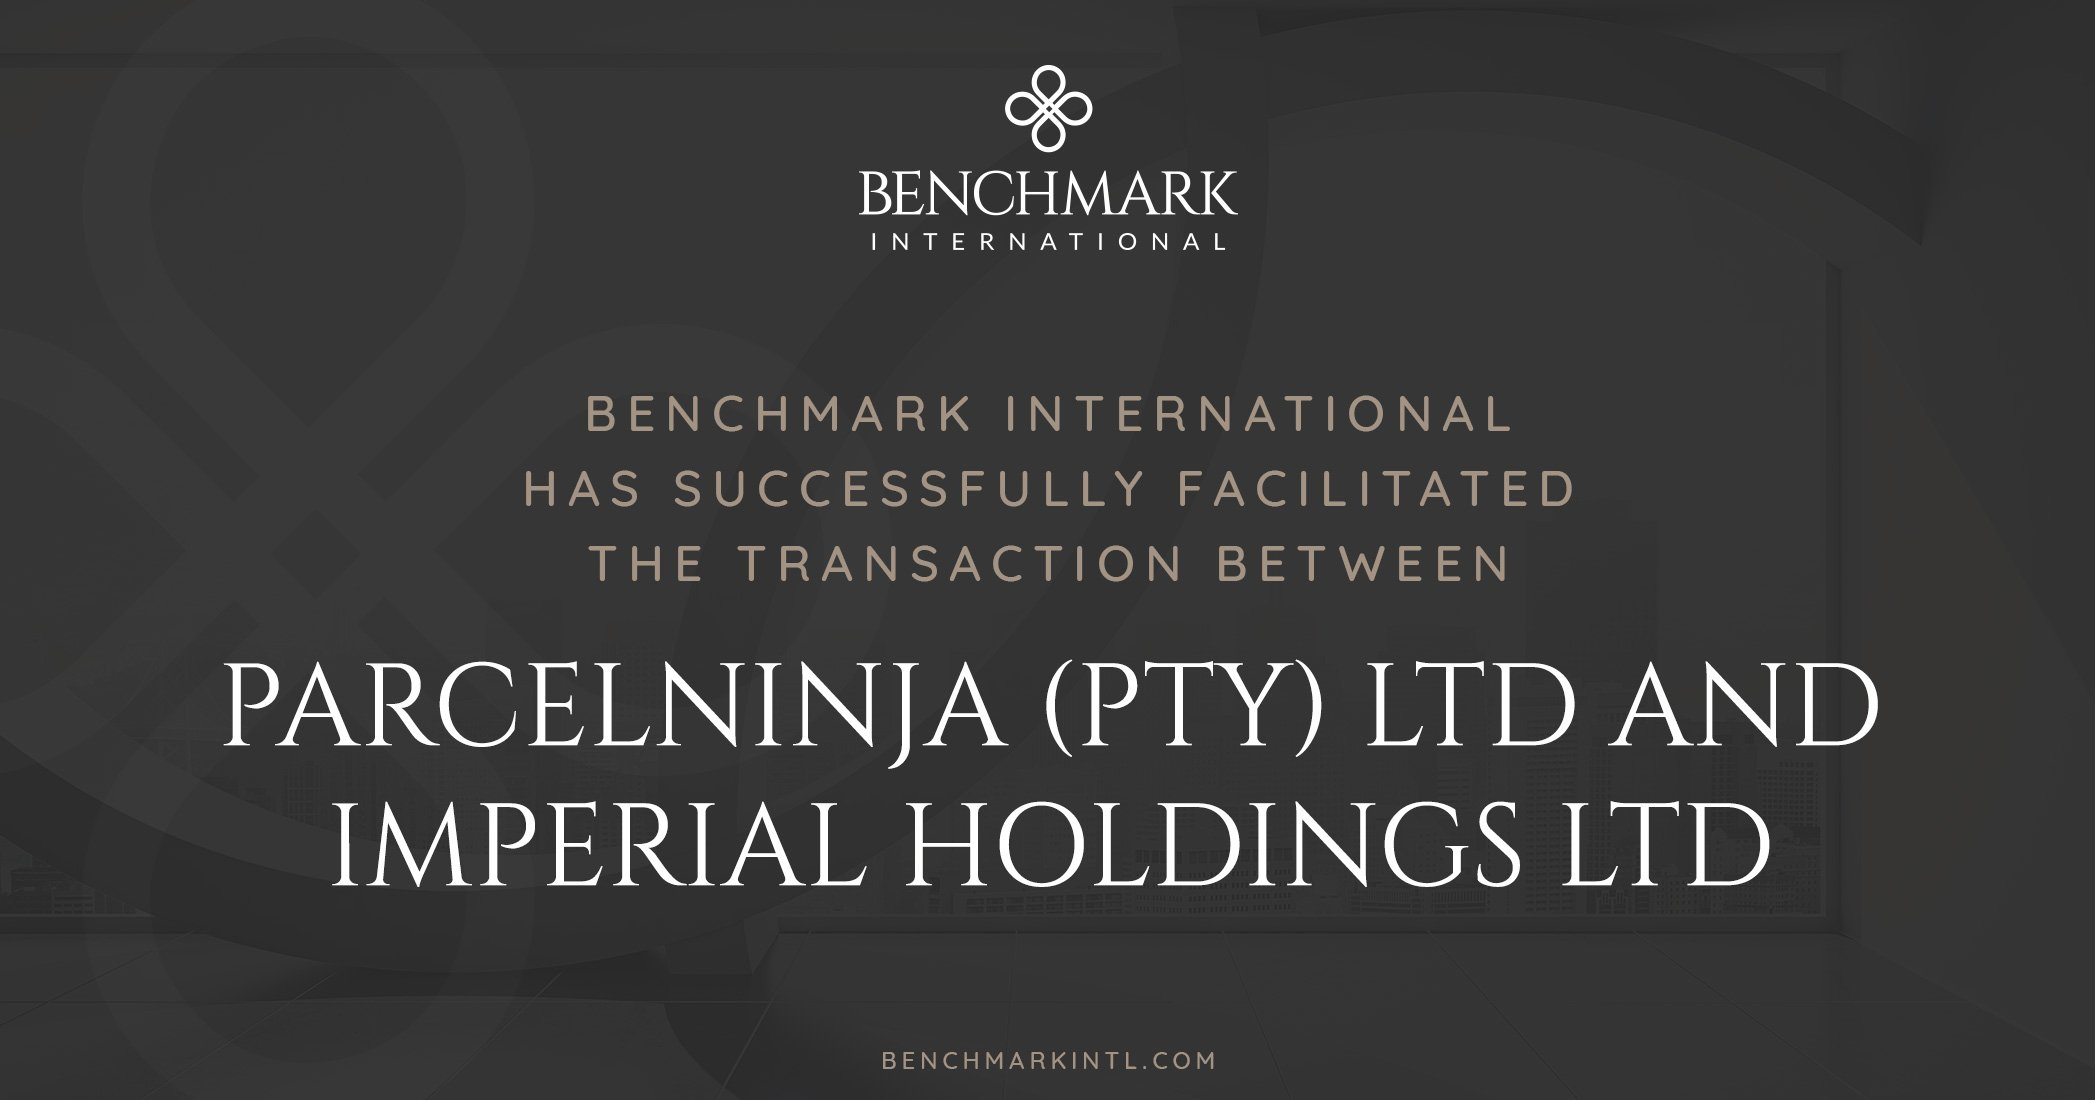 Benchmark International Successfully Facilitated the Transaction Between ParcelNinja (Pty) LTD and Imperial Holdings LTD